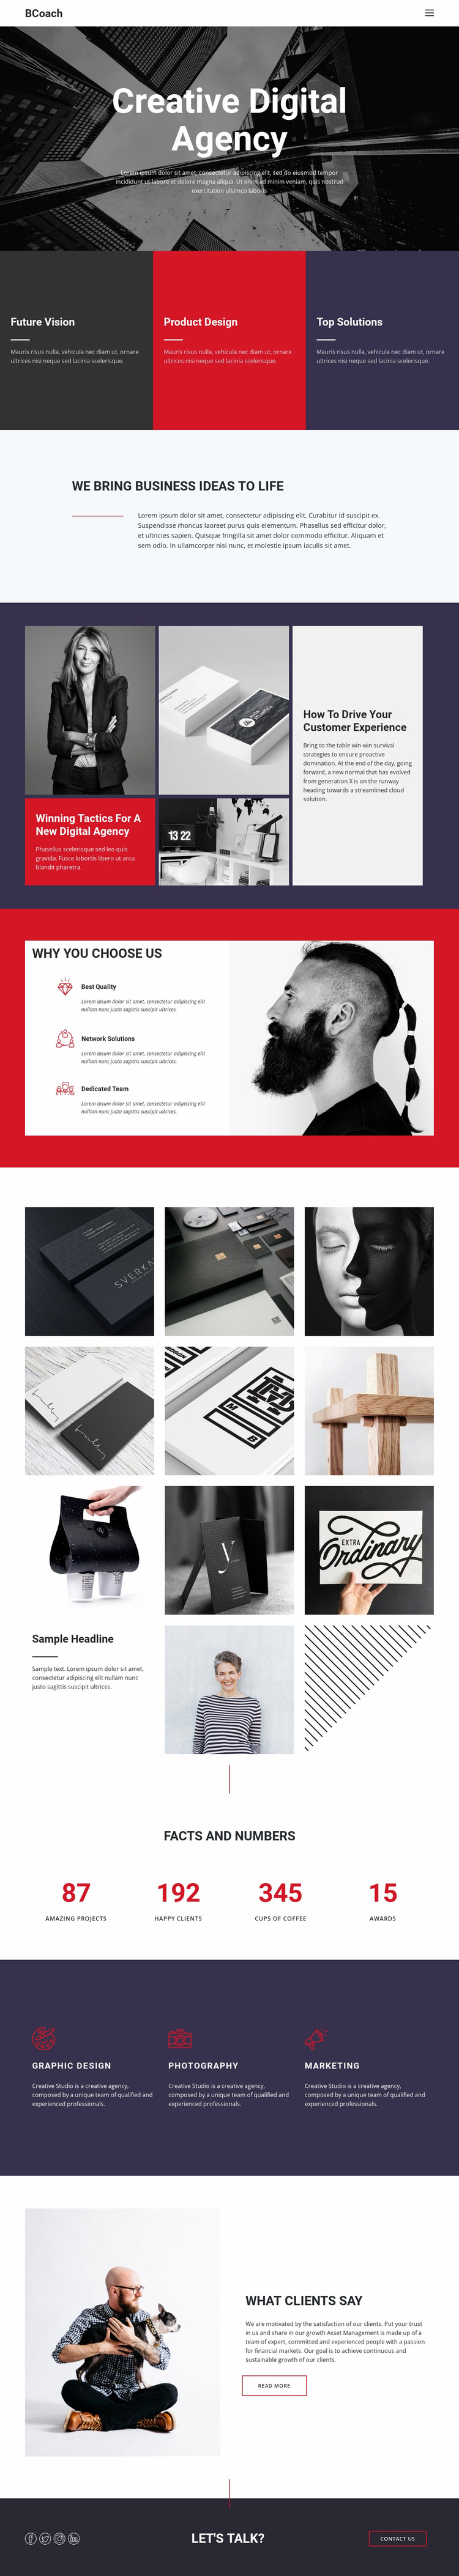 Digitize your products Website Mockup